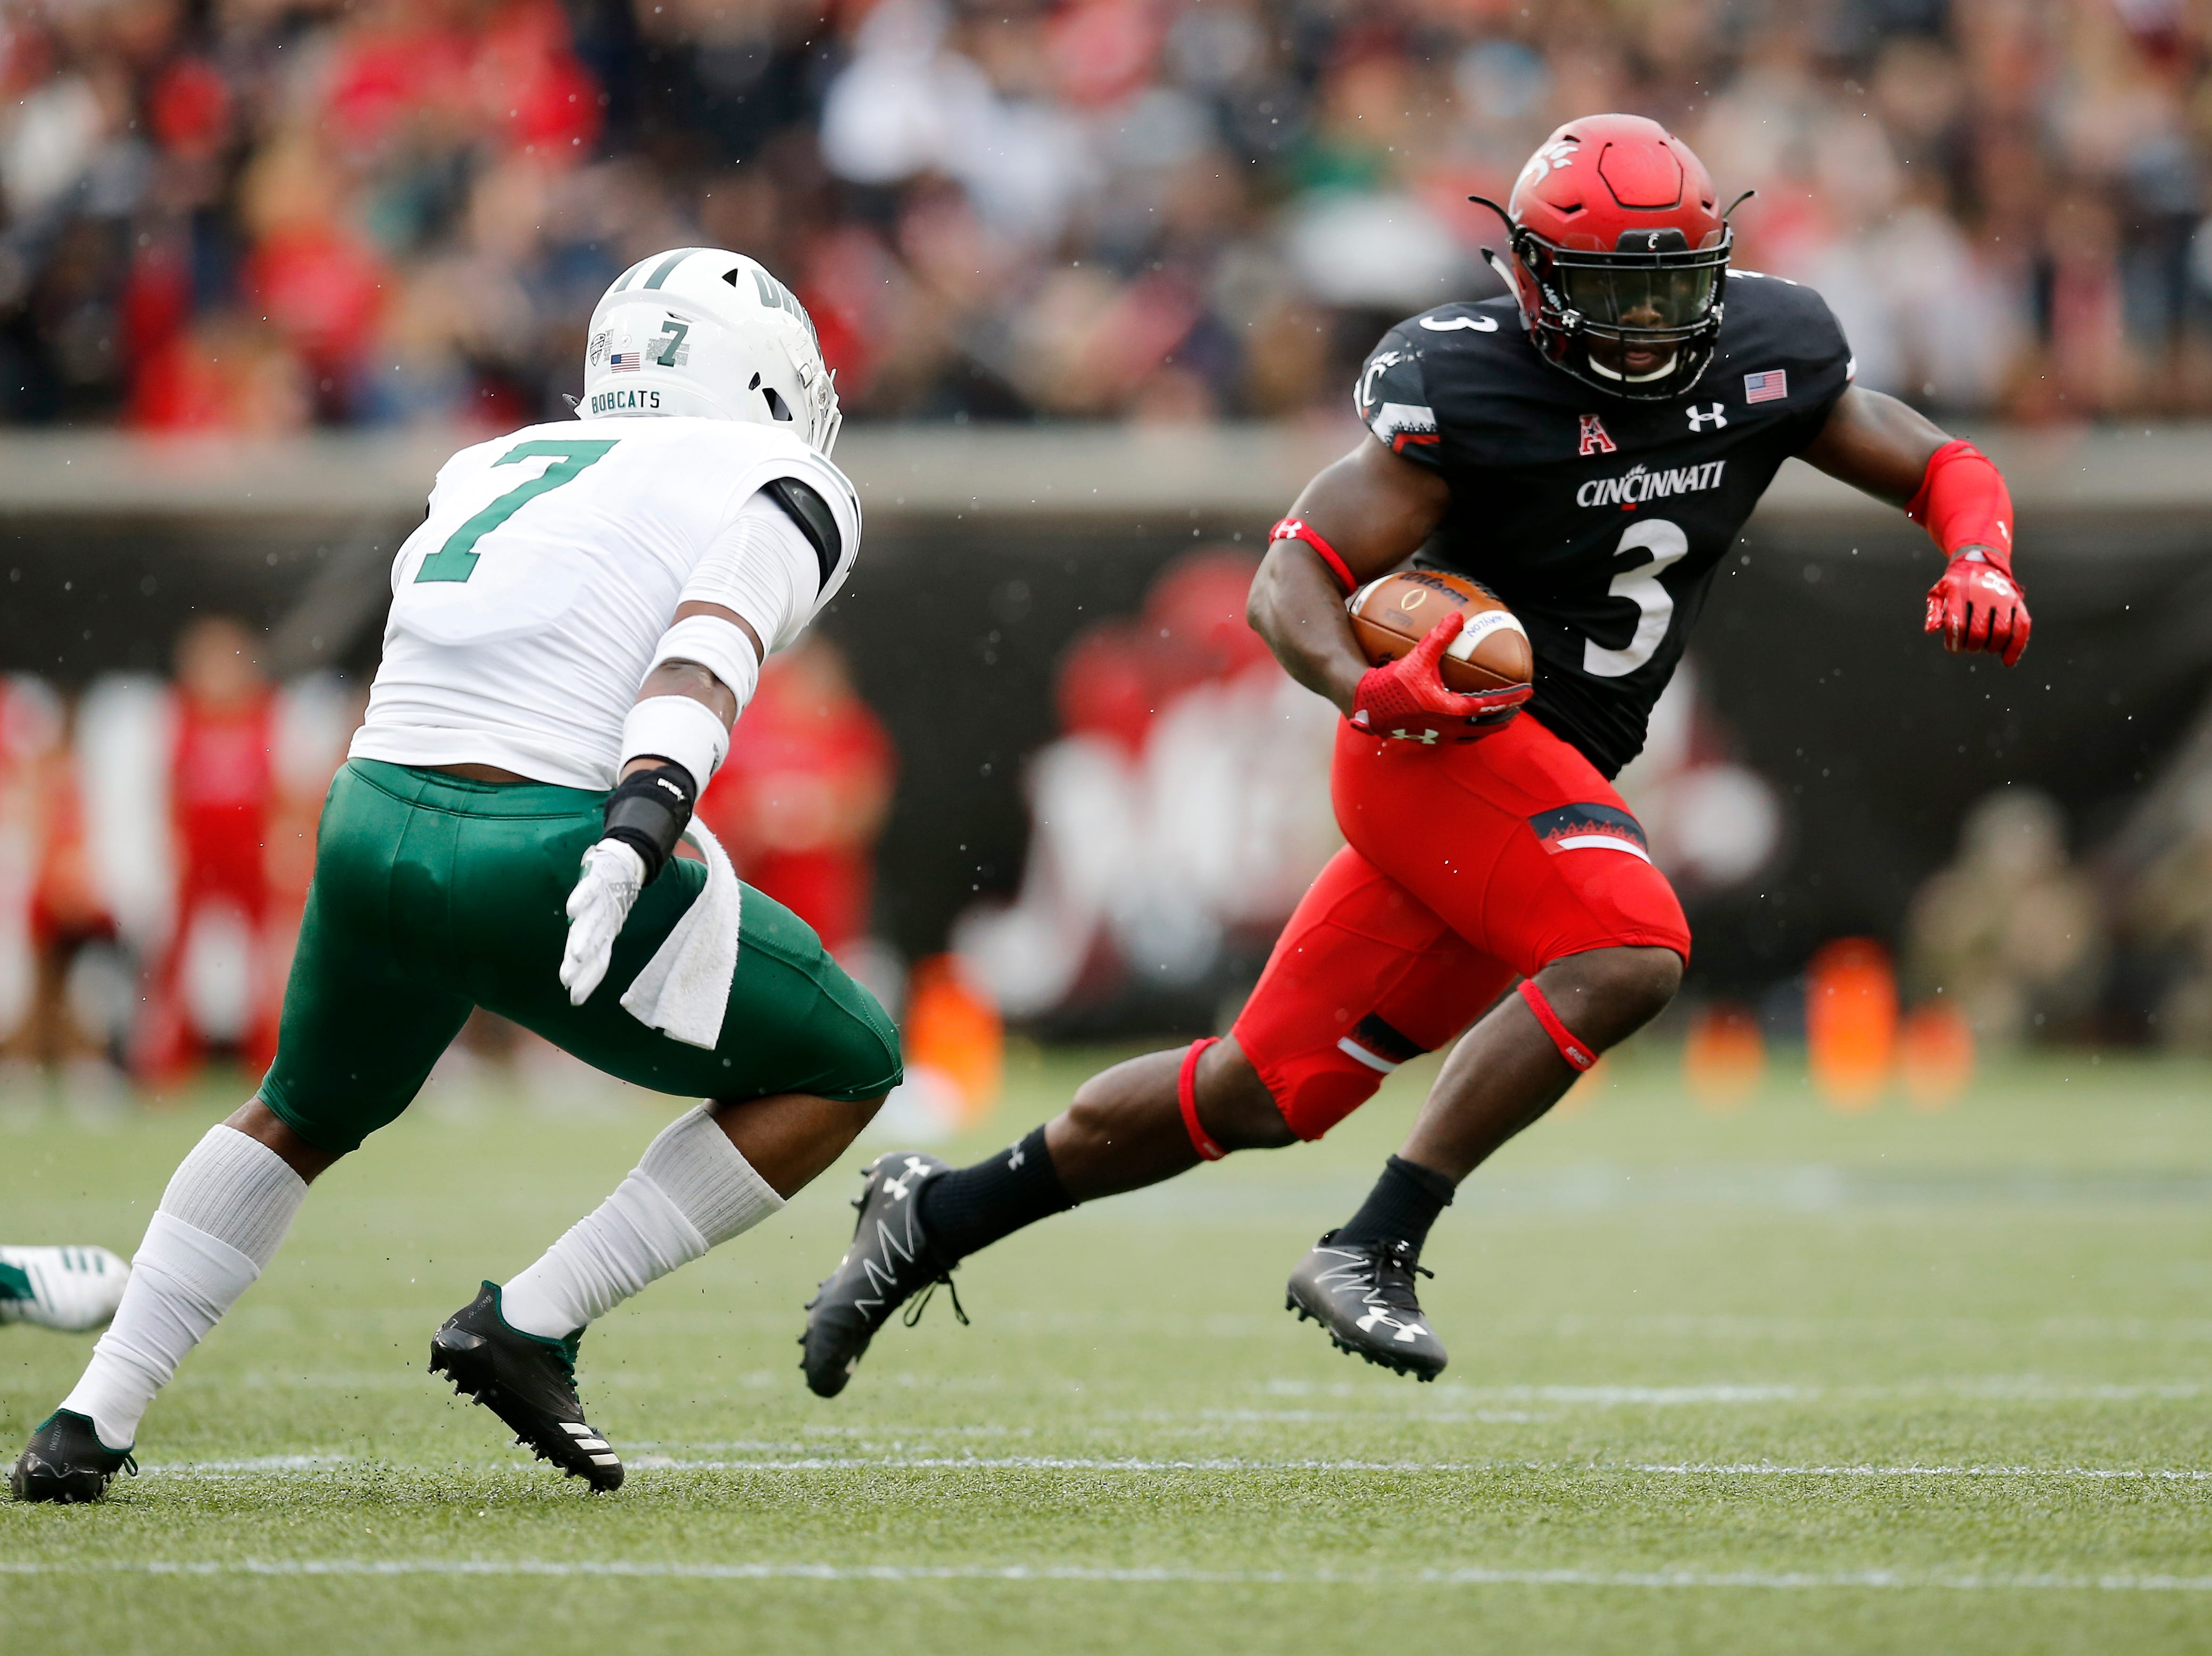 Cincinnati Bearcats running back Michael Warren II (3) run the ball on a touchdown carry in the second quarter of the NCAA football game between the Cincinnati Bearcats and the Ohio Bobcats at Nippert Stadium on the University of Cincinnati campus in Cincinnati on Saturday, Sept. 22, 2018. The Bobcats led 24-7 at halftime.